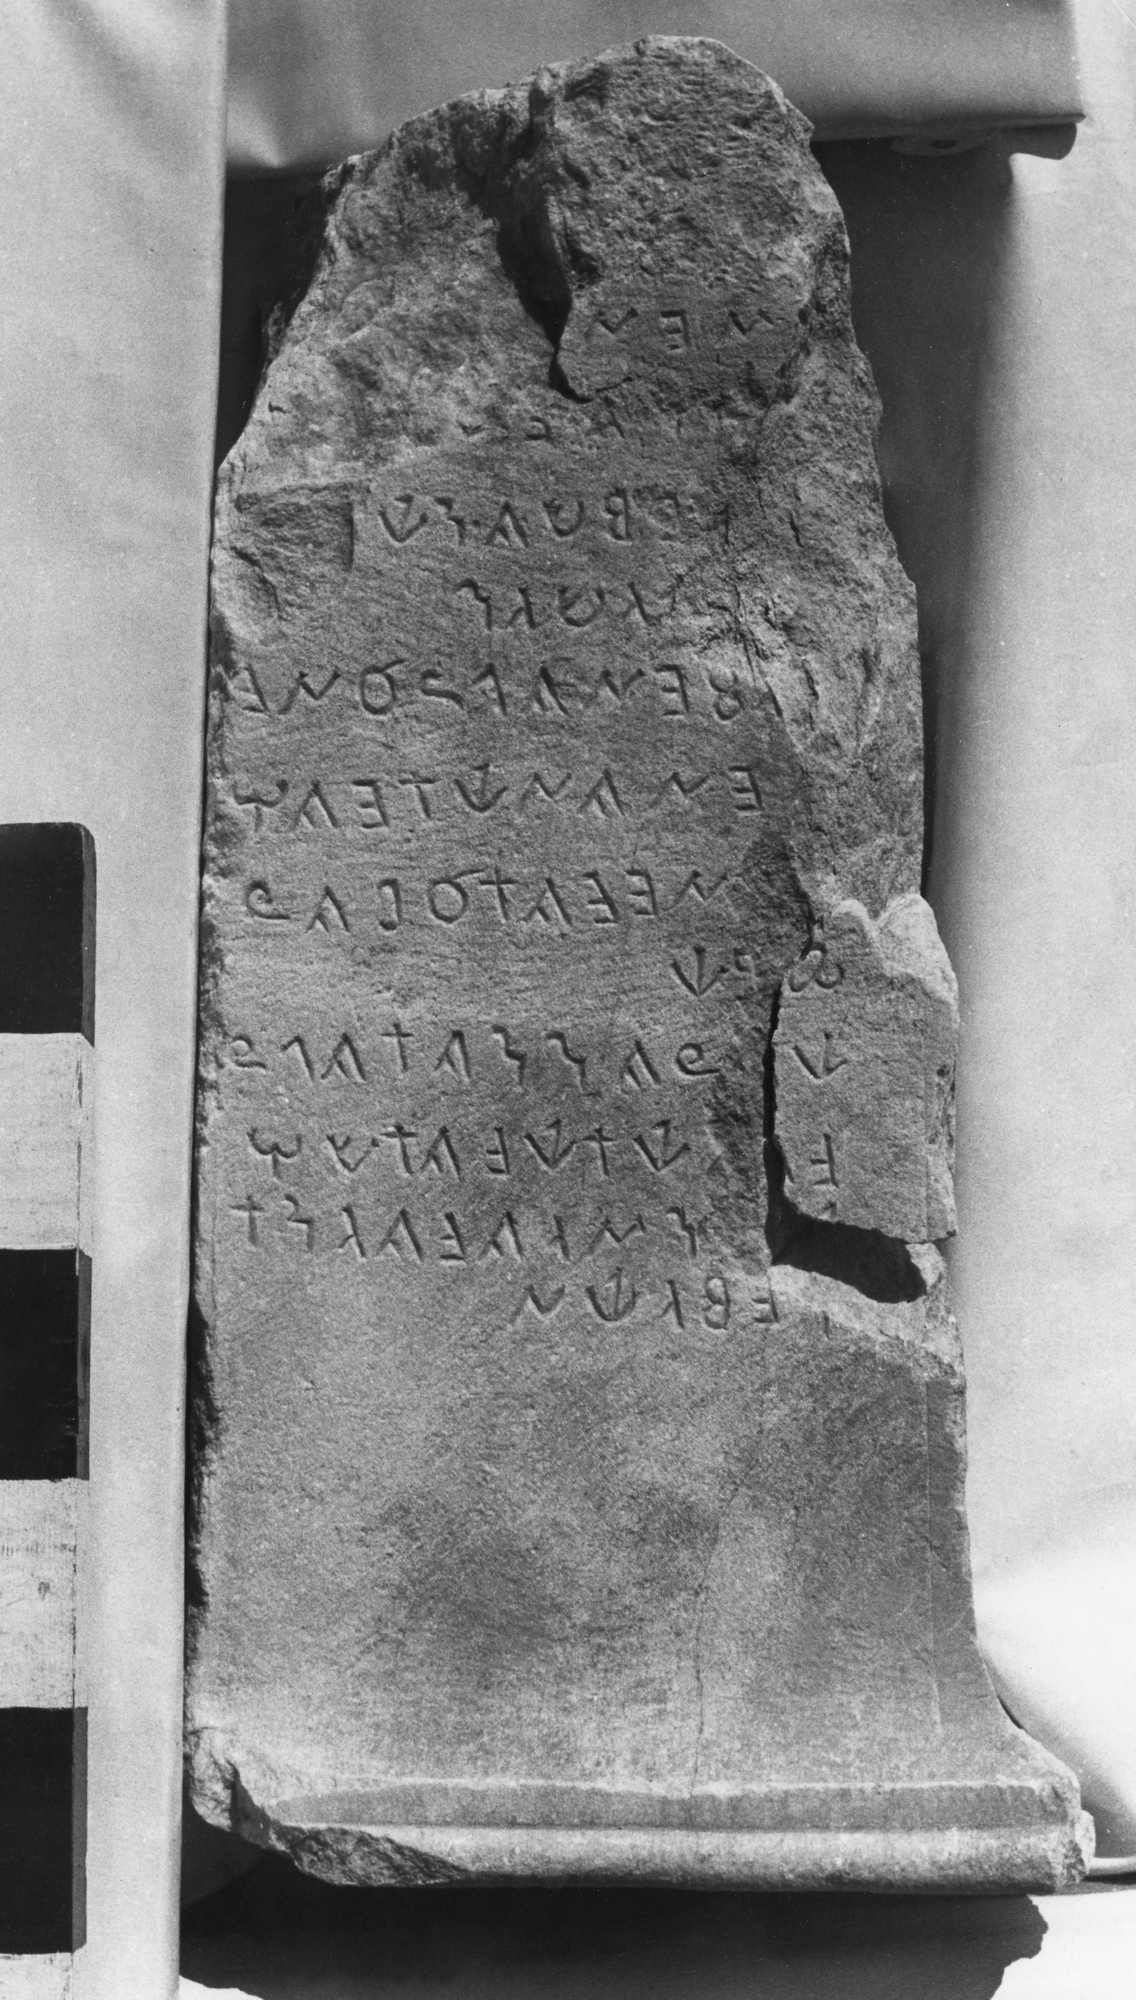 Marble Block with Inscription in Unknown Language